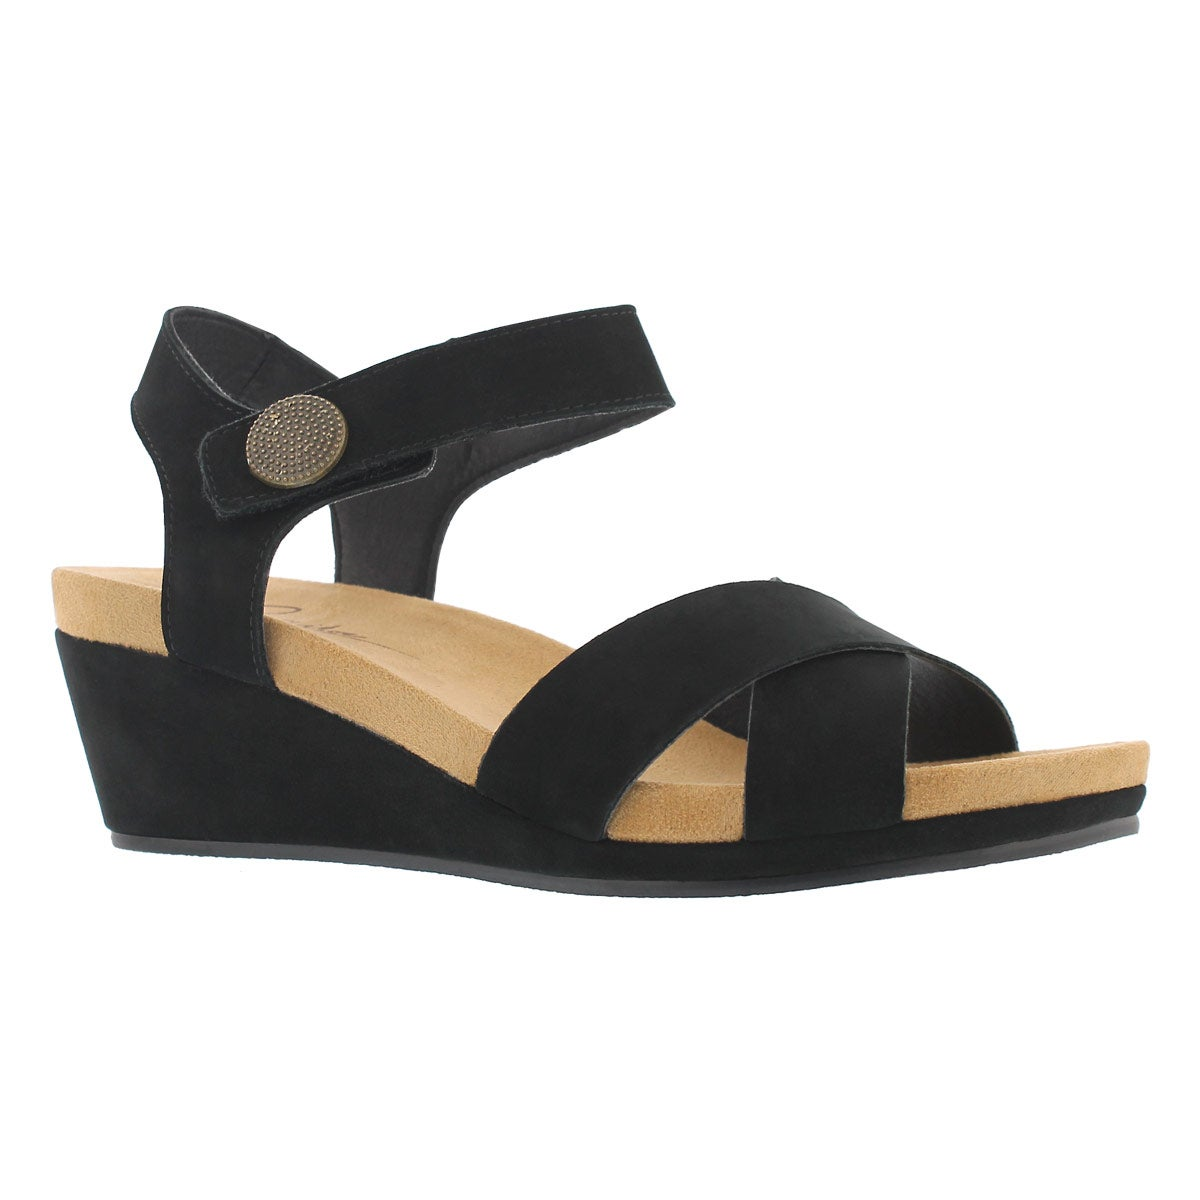 Women's ANNALISA black casual wedge sandals